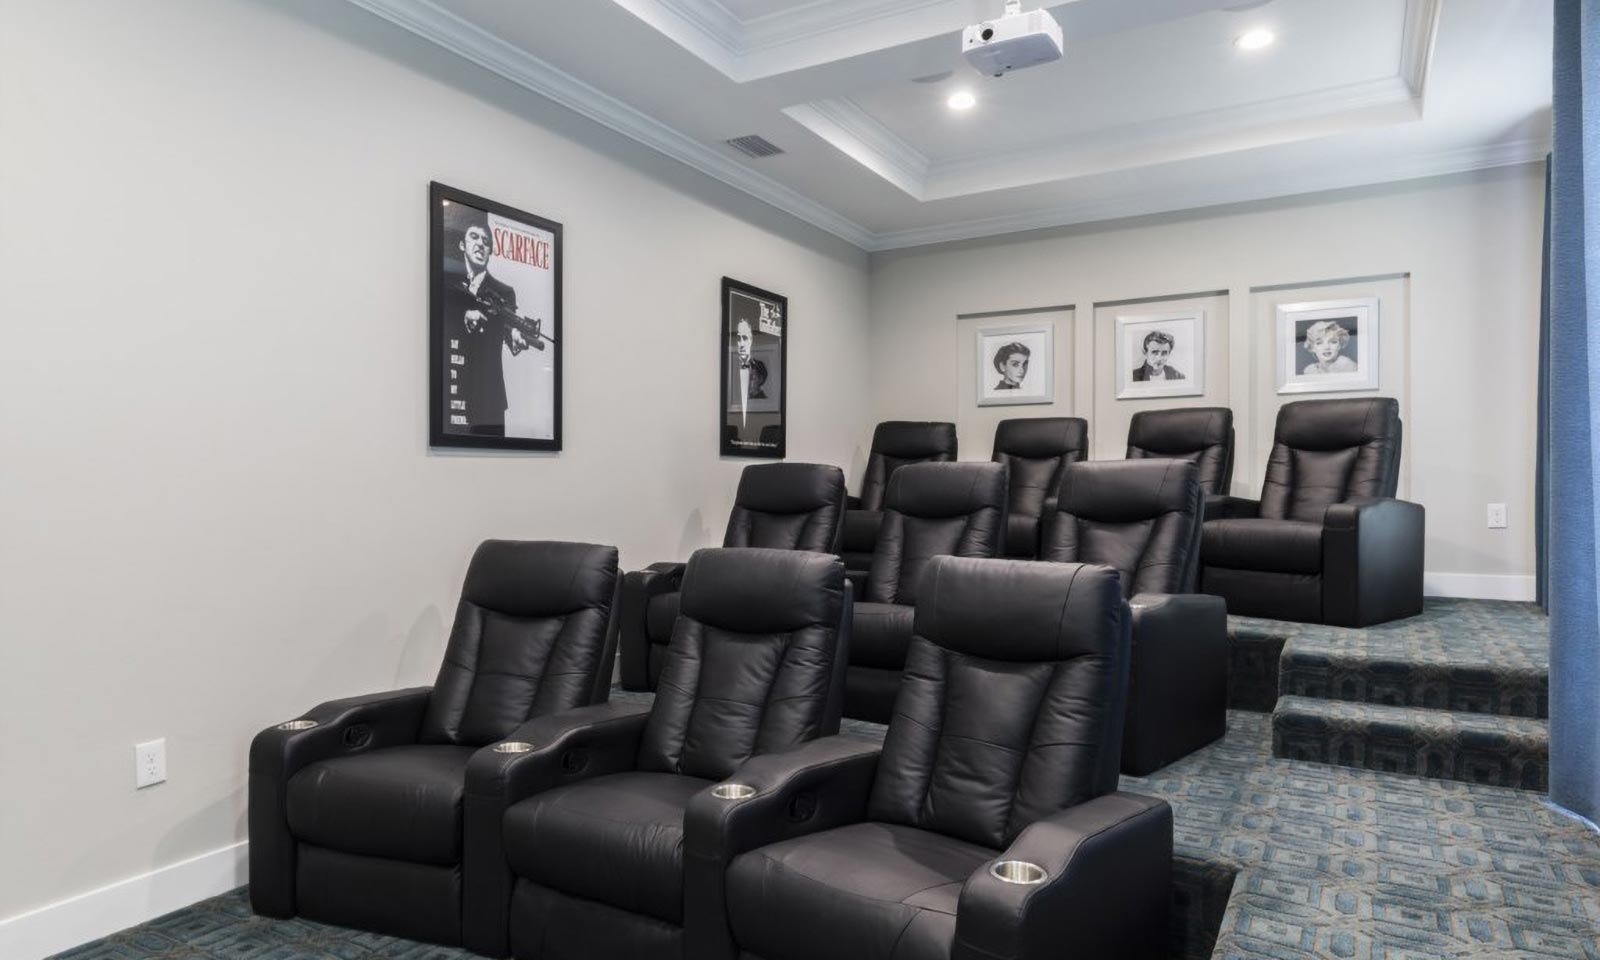 [amenities:Theater-Room:1]Theater Room